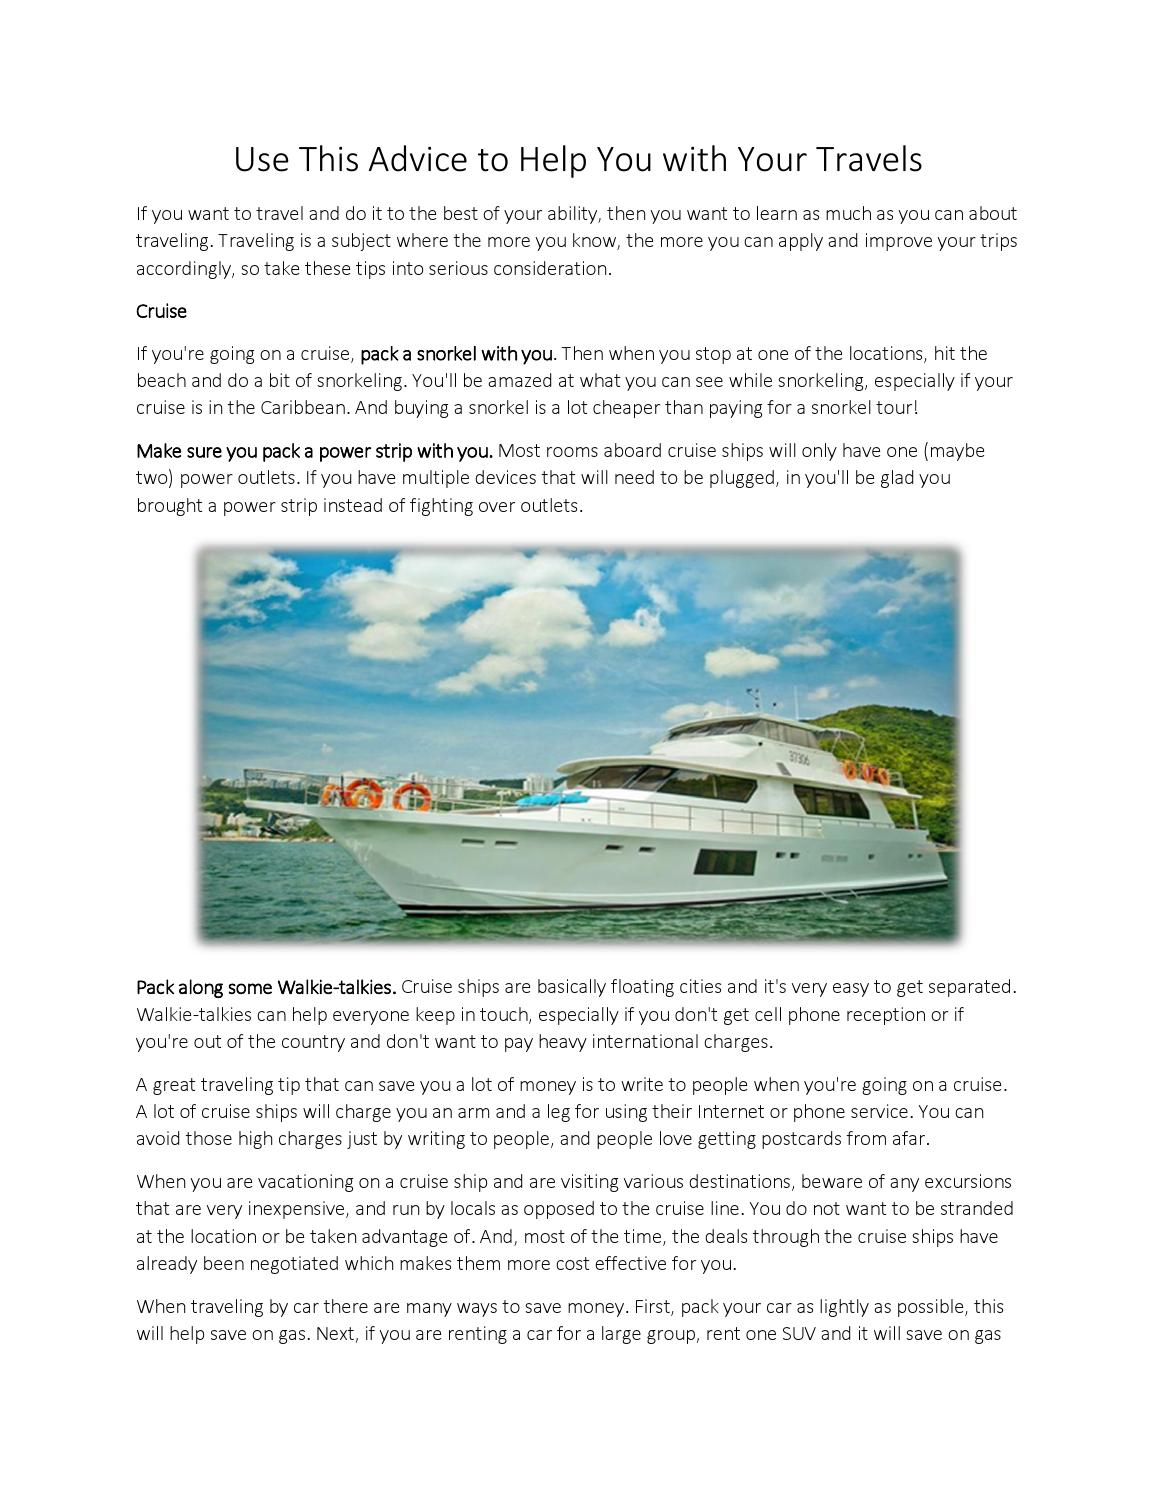 Use This Advice To Help You With Your Travels By Megan Simmons Issuu - Cell phone service on cruise ships